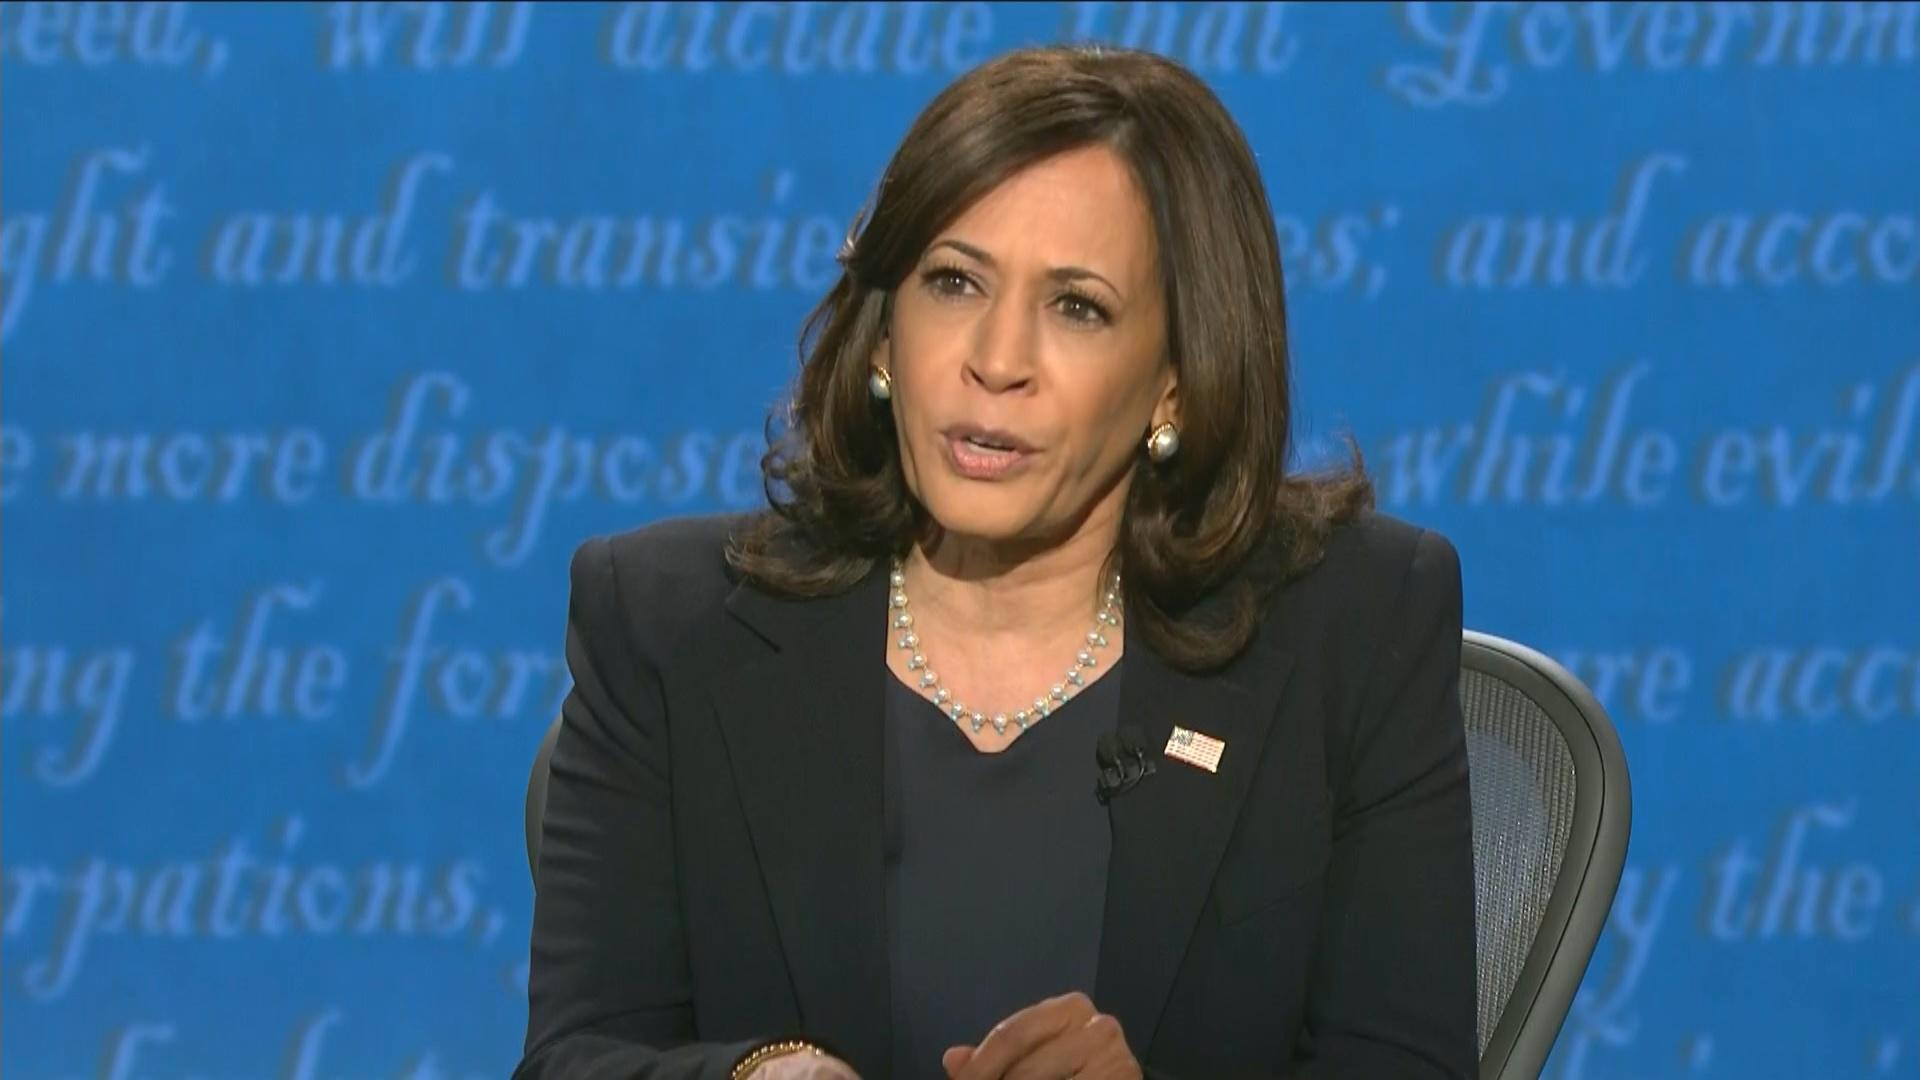 A file photo of Kamala Harris, who was sworn in Jan. 20, 2021 as vice president of the United States. (WTTW News via CNN)